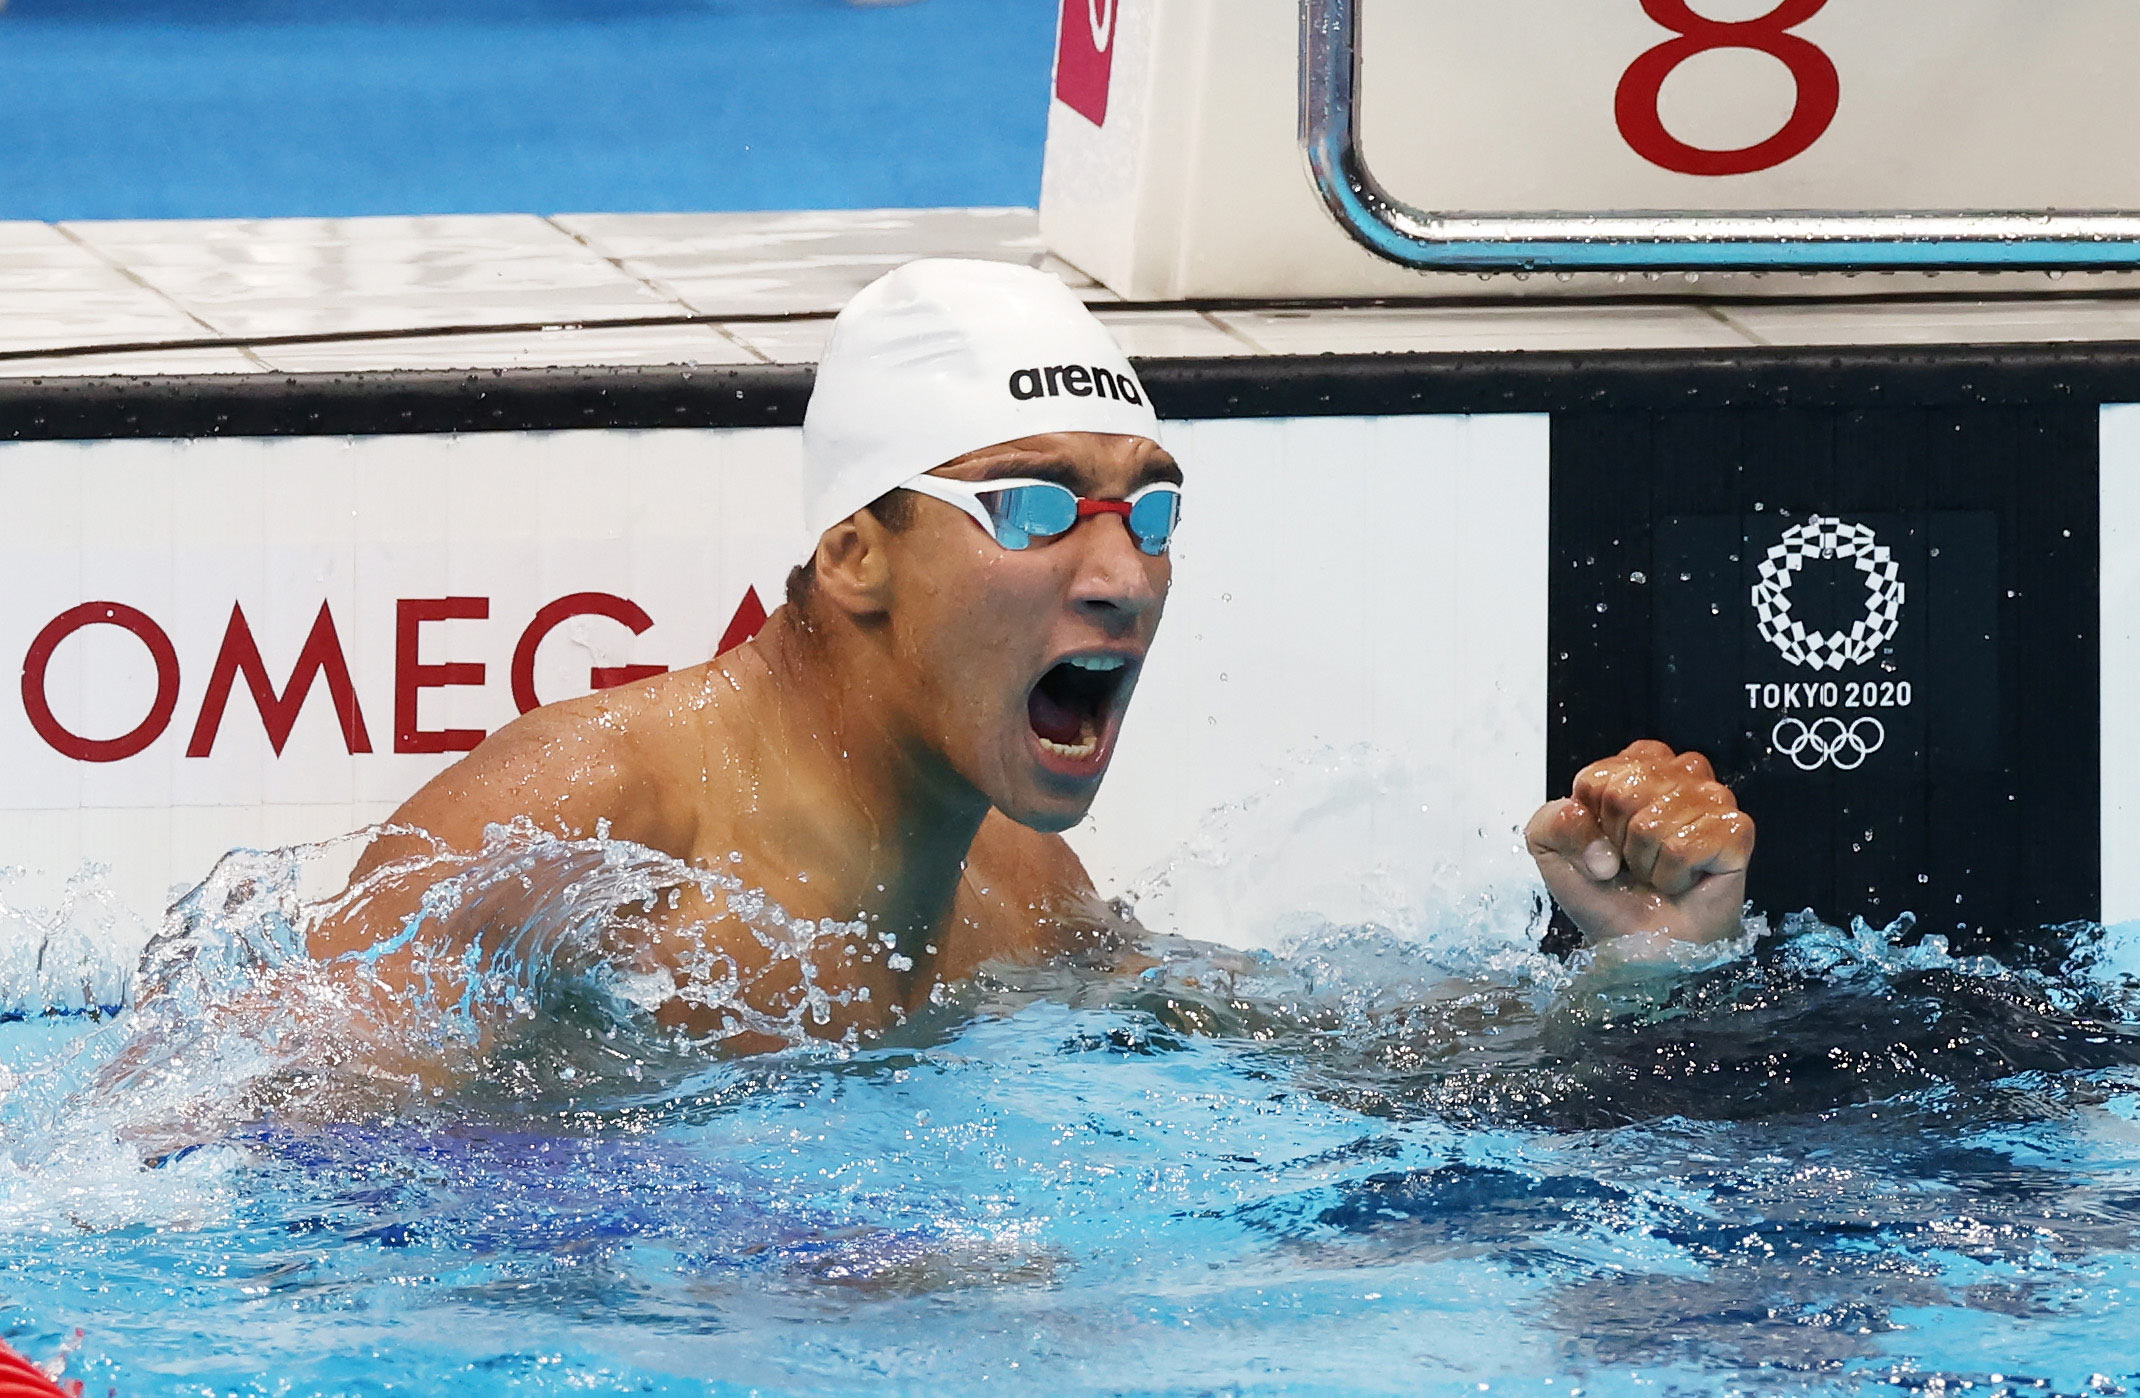 Ahmed Hafnaoui of Team Tunisia celebrates after winning the gold medal in the 400m freestyle final on July 25.